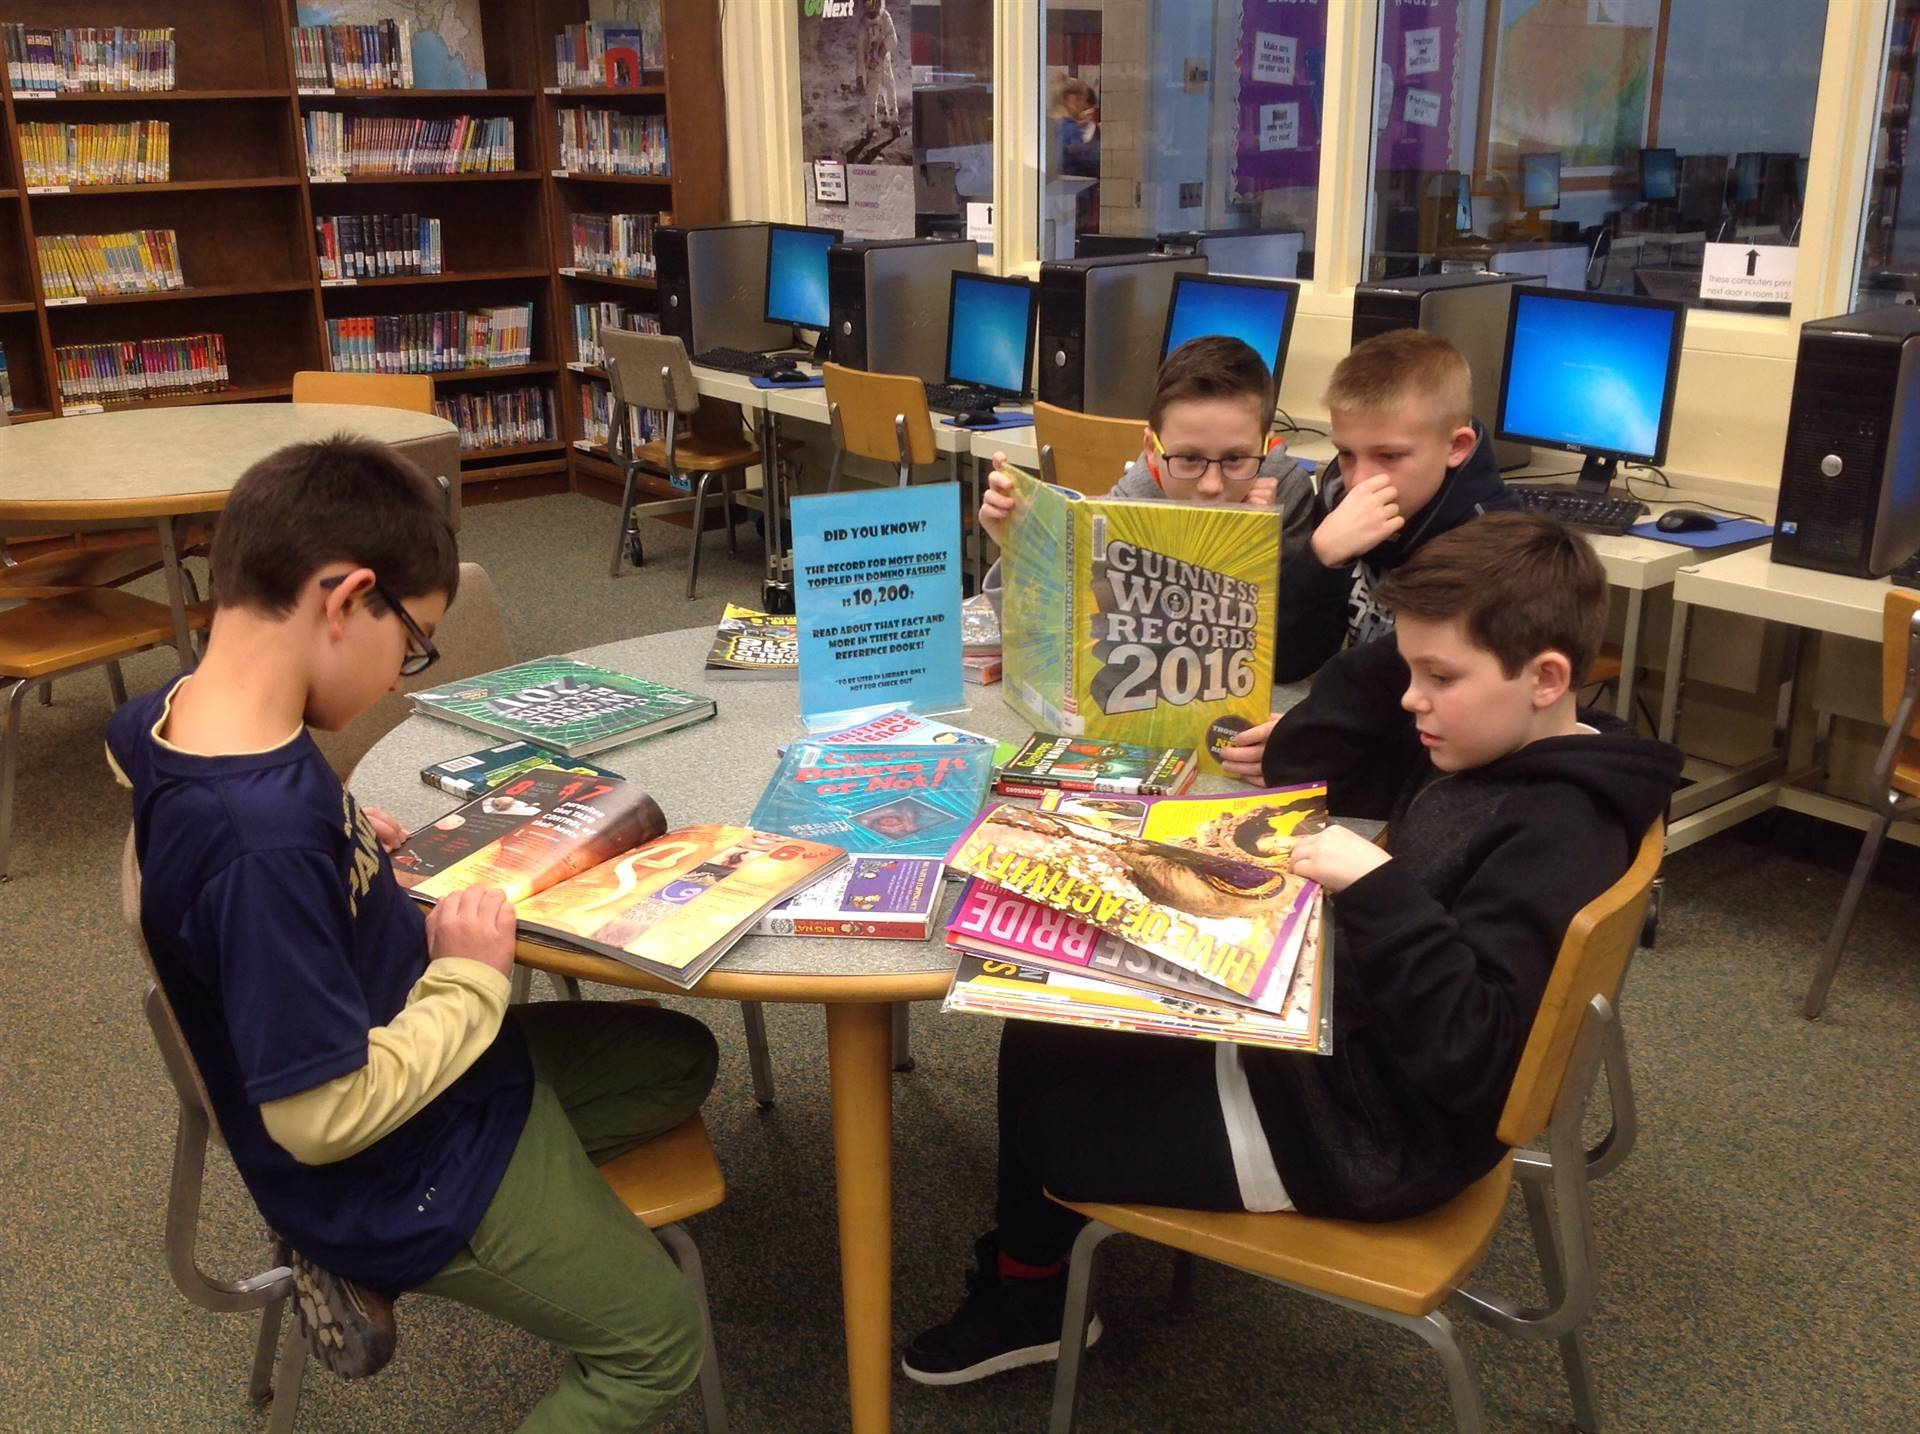 a group of boys look up facts in reference books